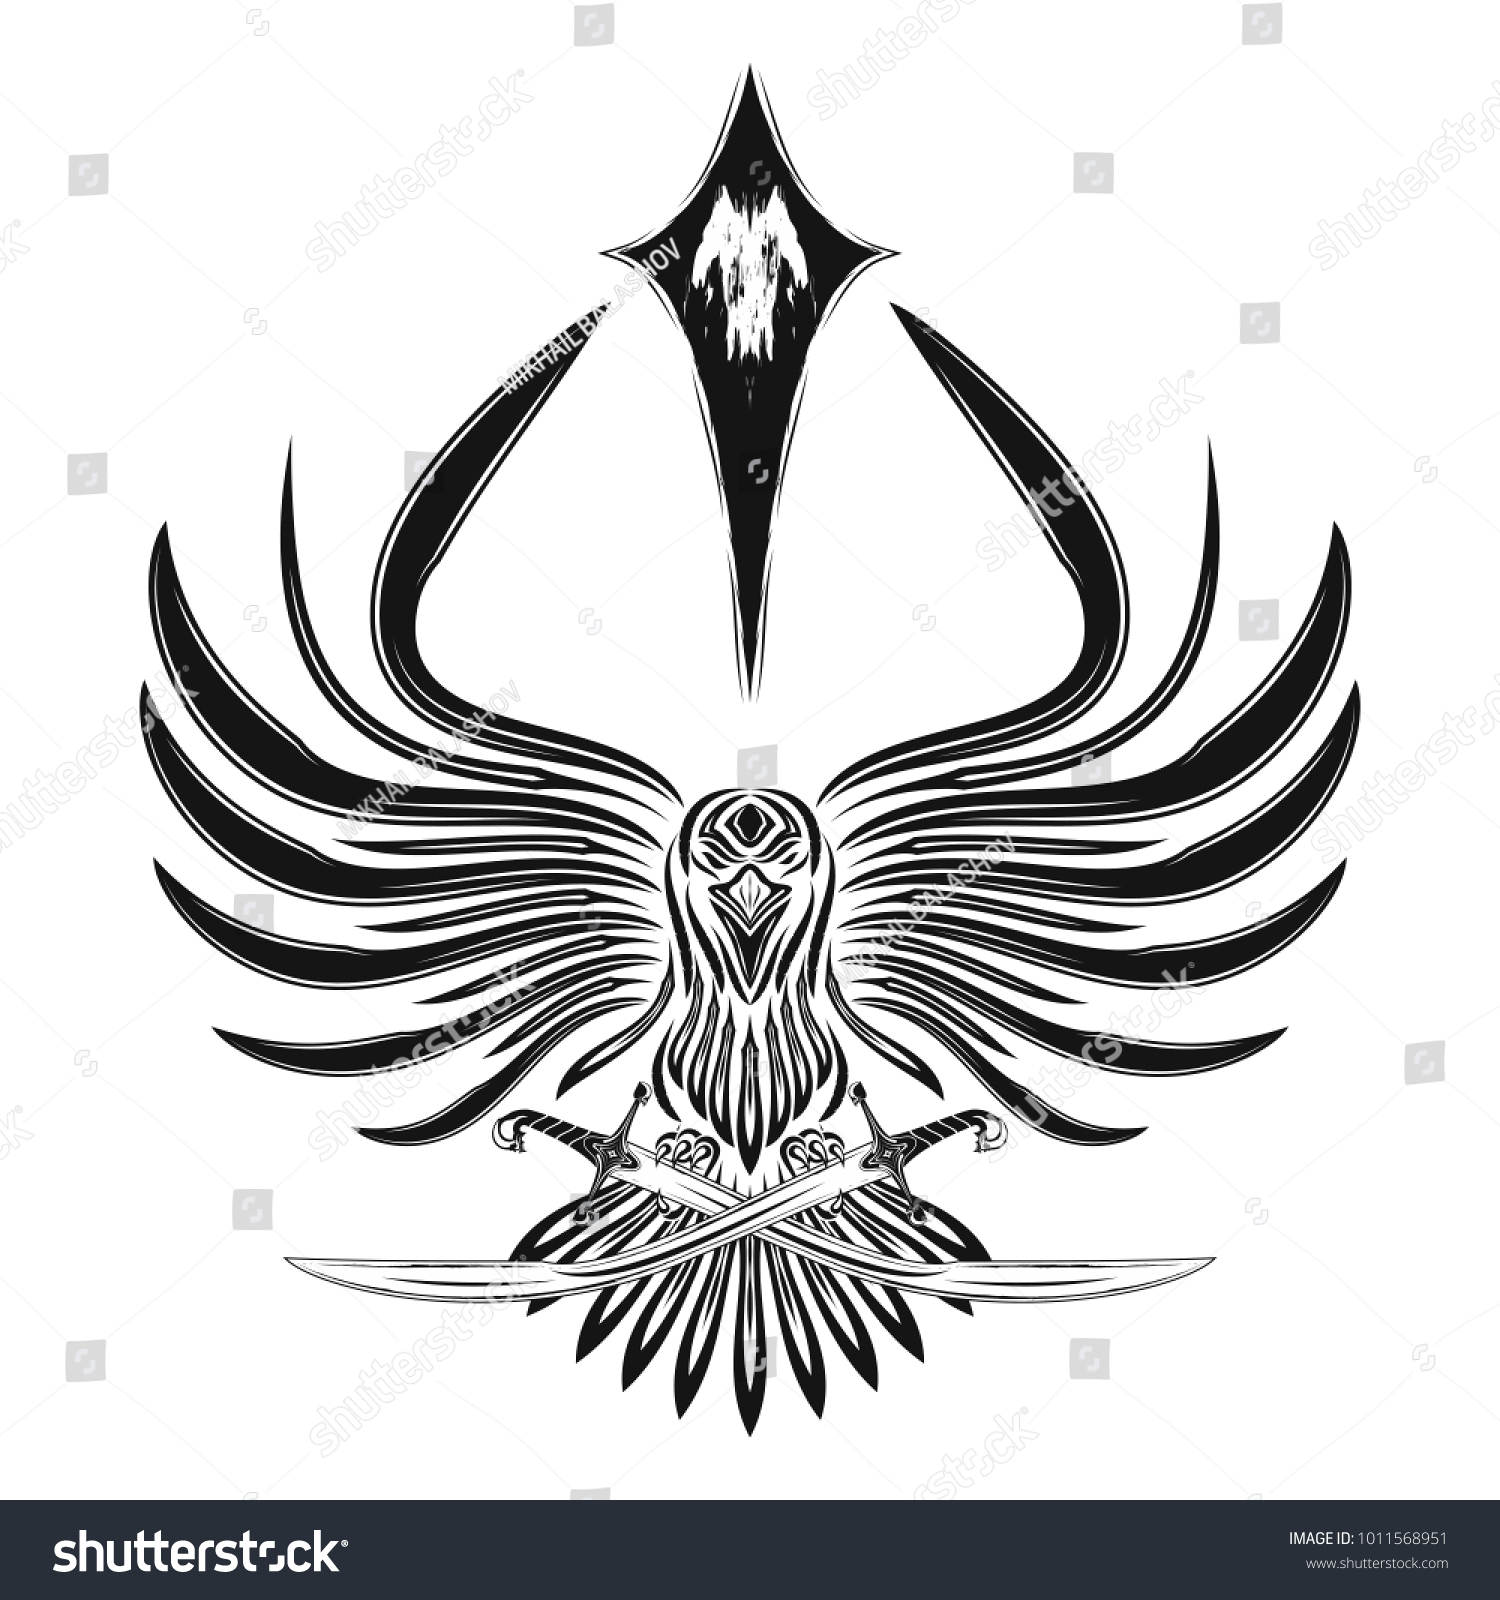 Vector Image Raven Open Wings Crossed Stock Vector Royalty Free